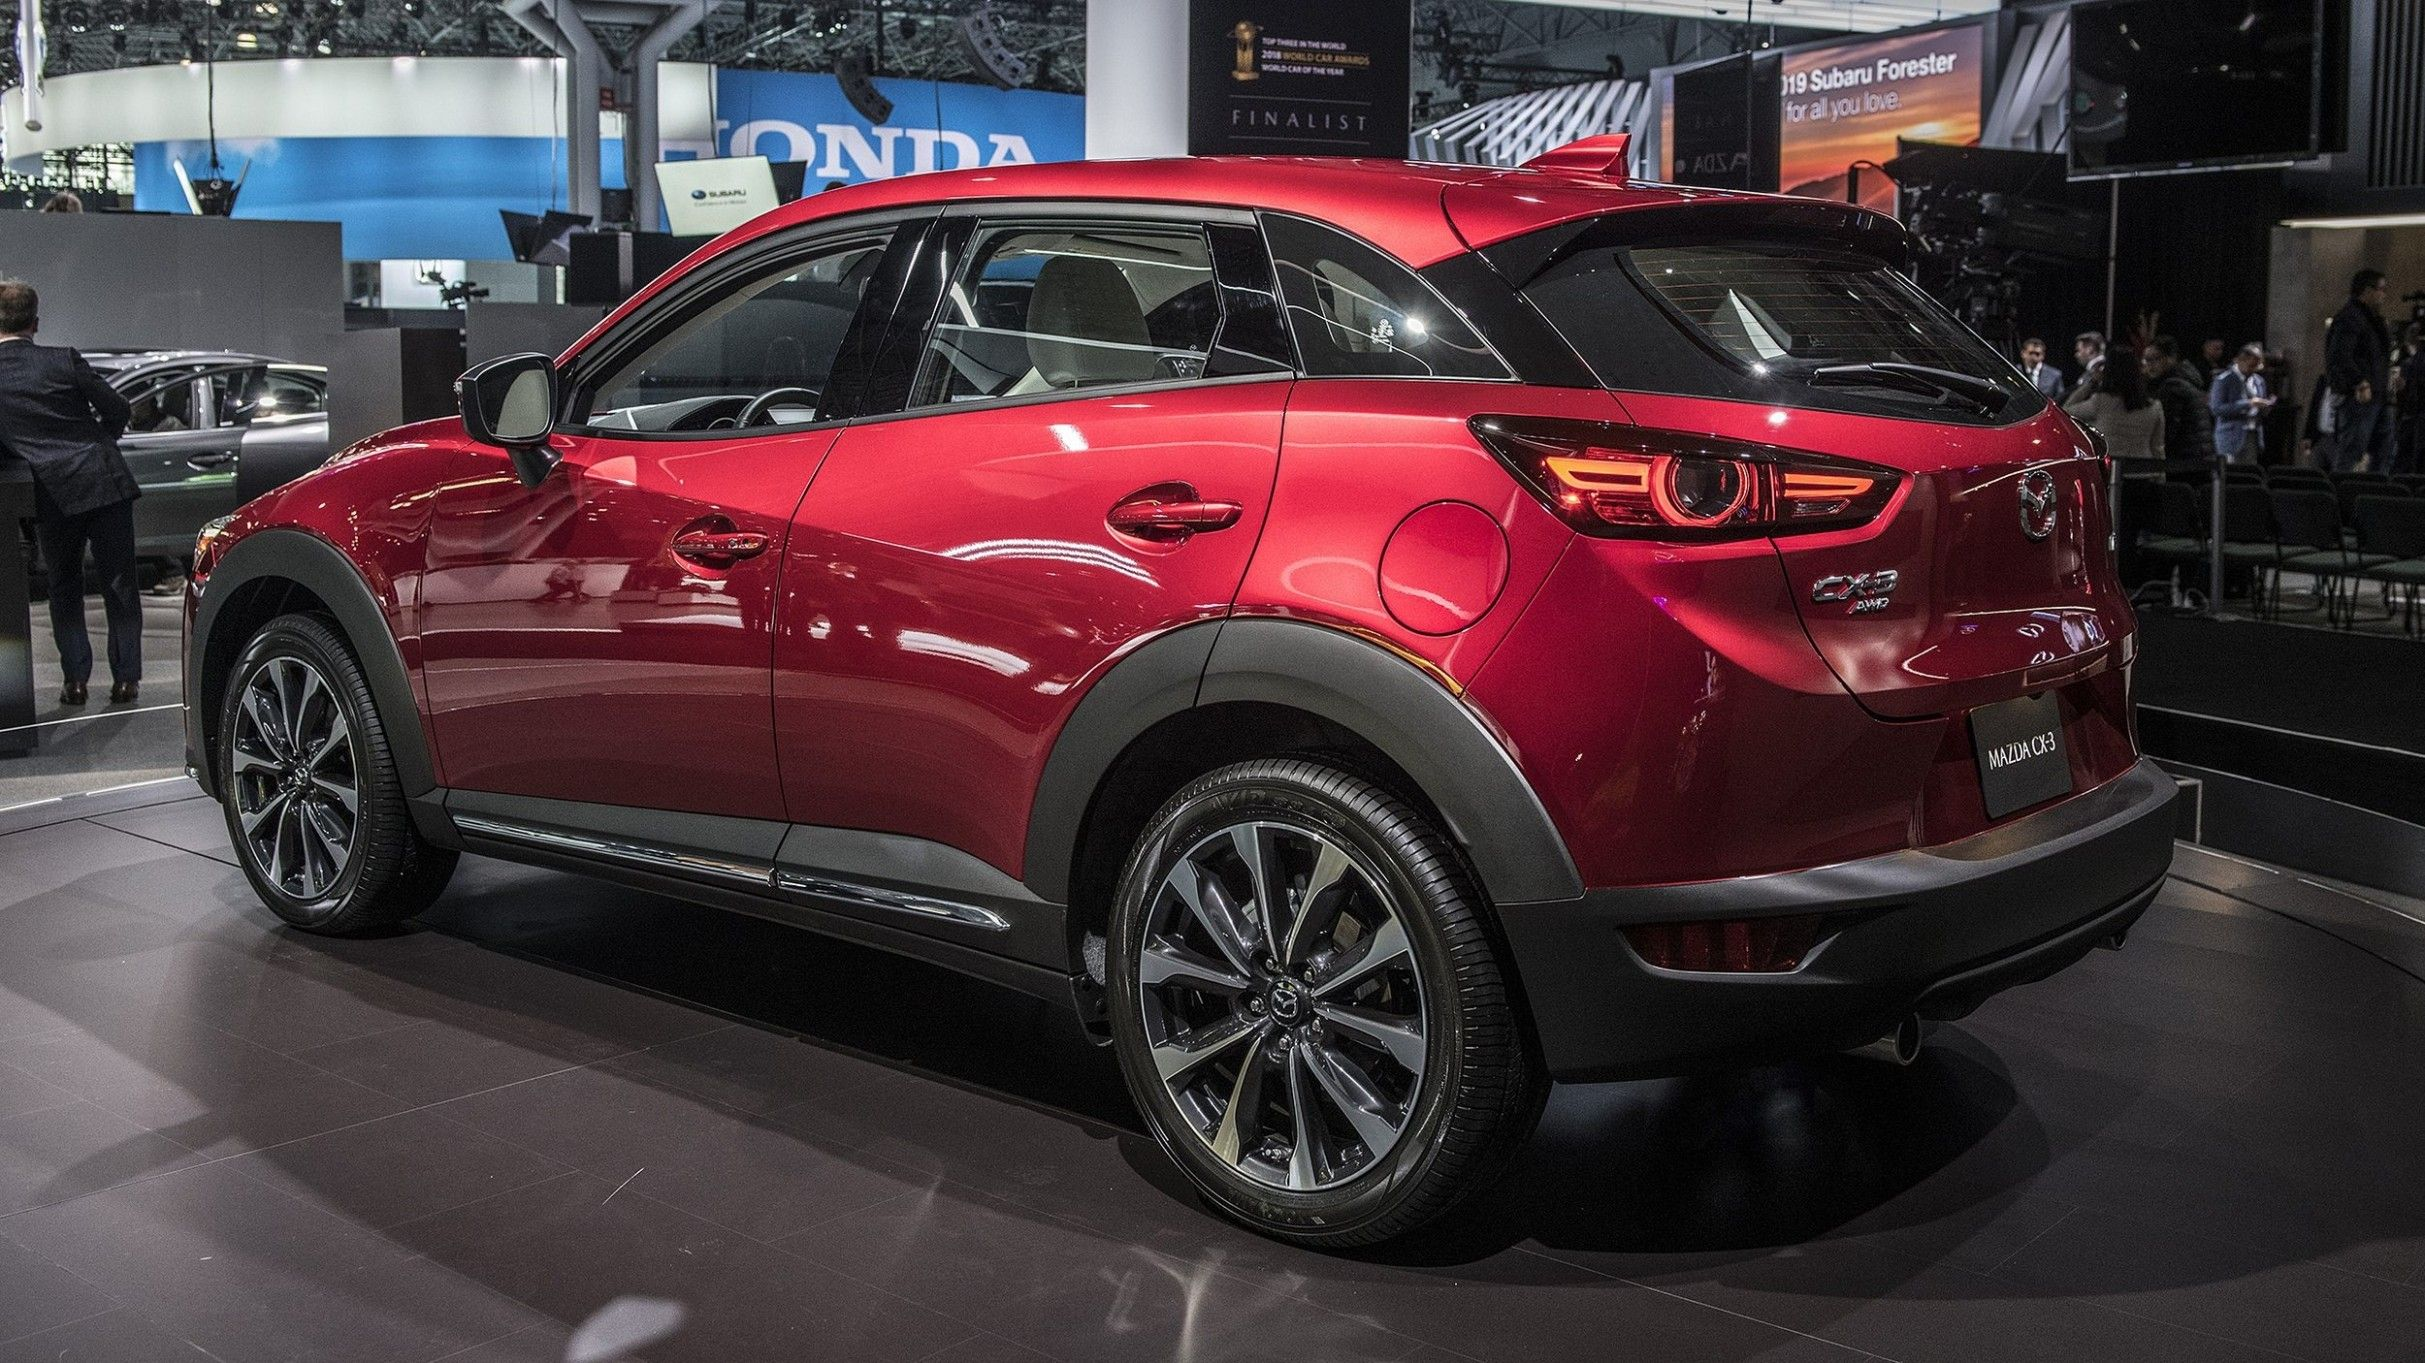 2021 Mazda Cx 3 (With images) Mazda, Car review, Mazda cx 7